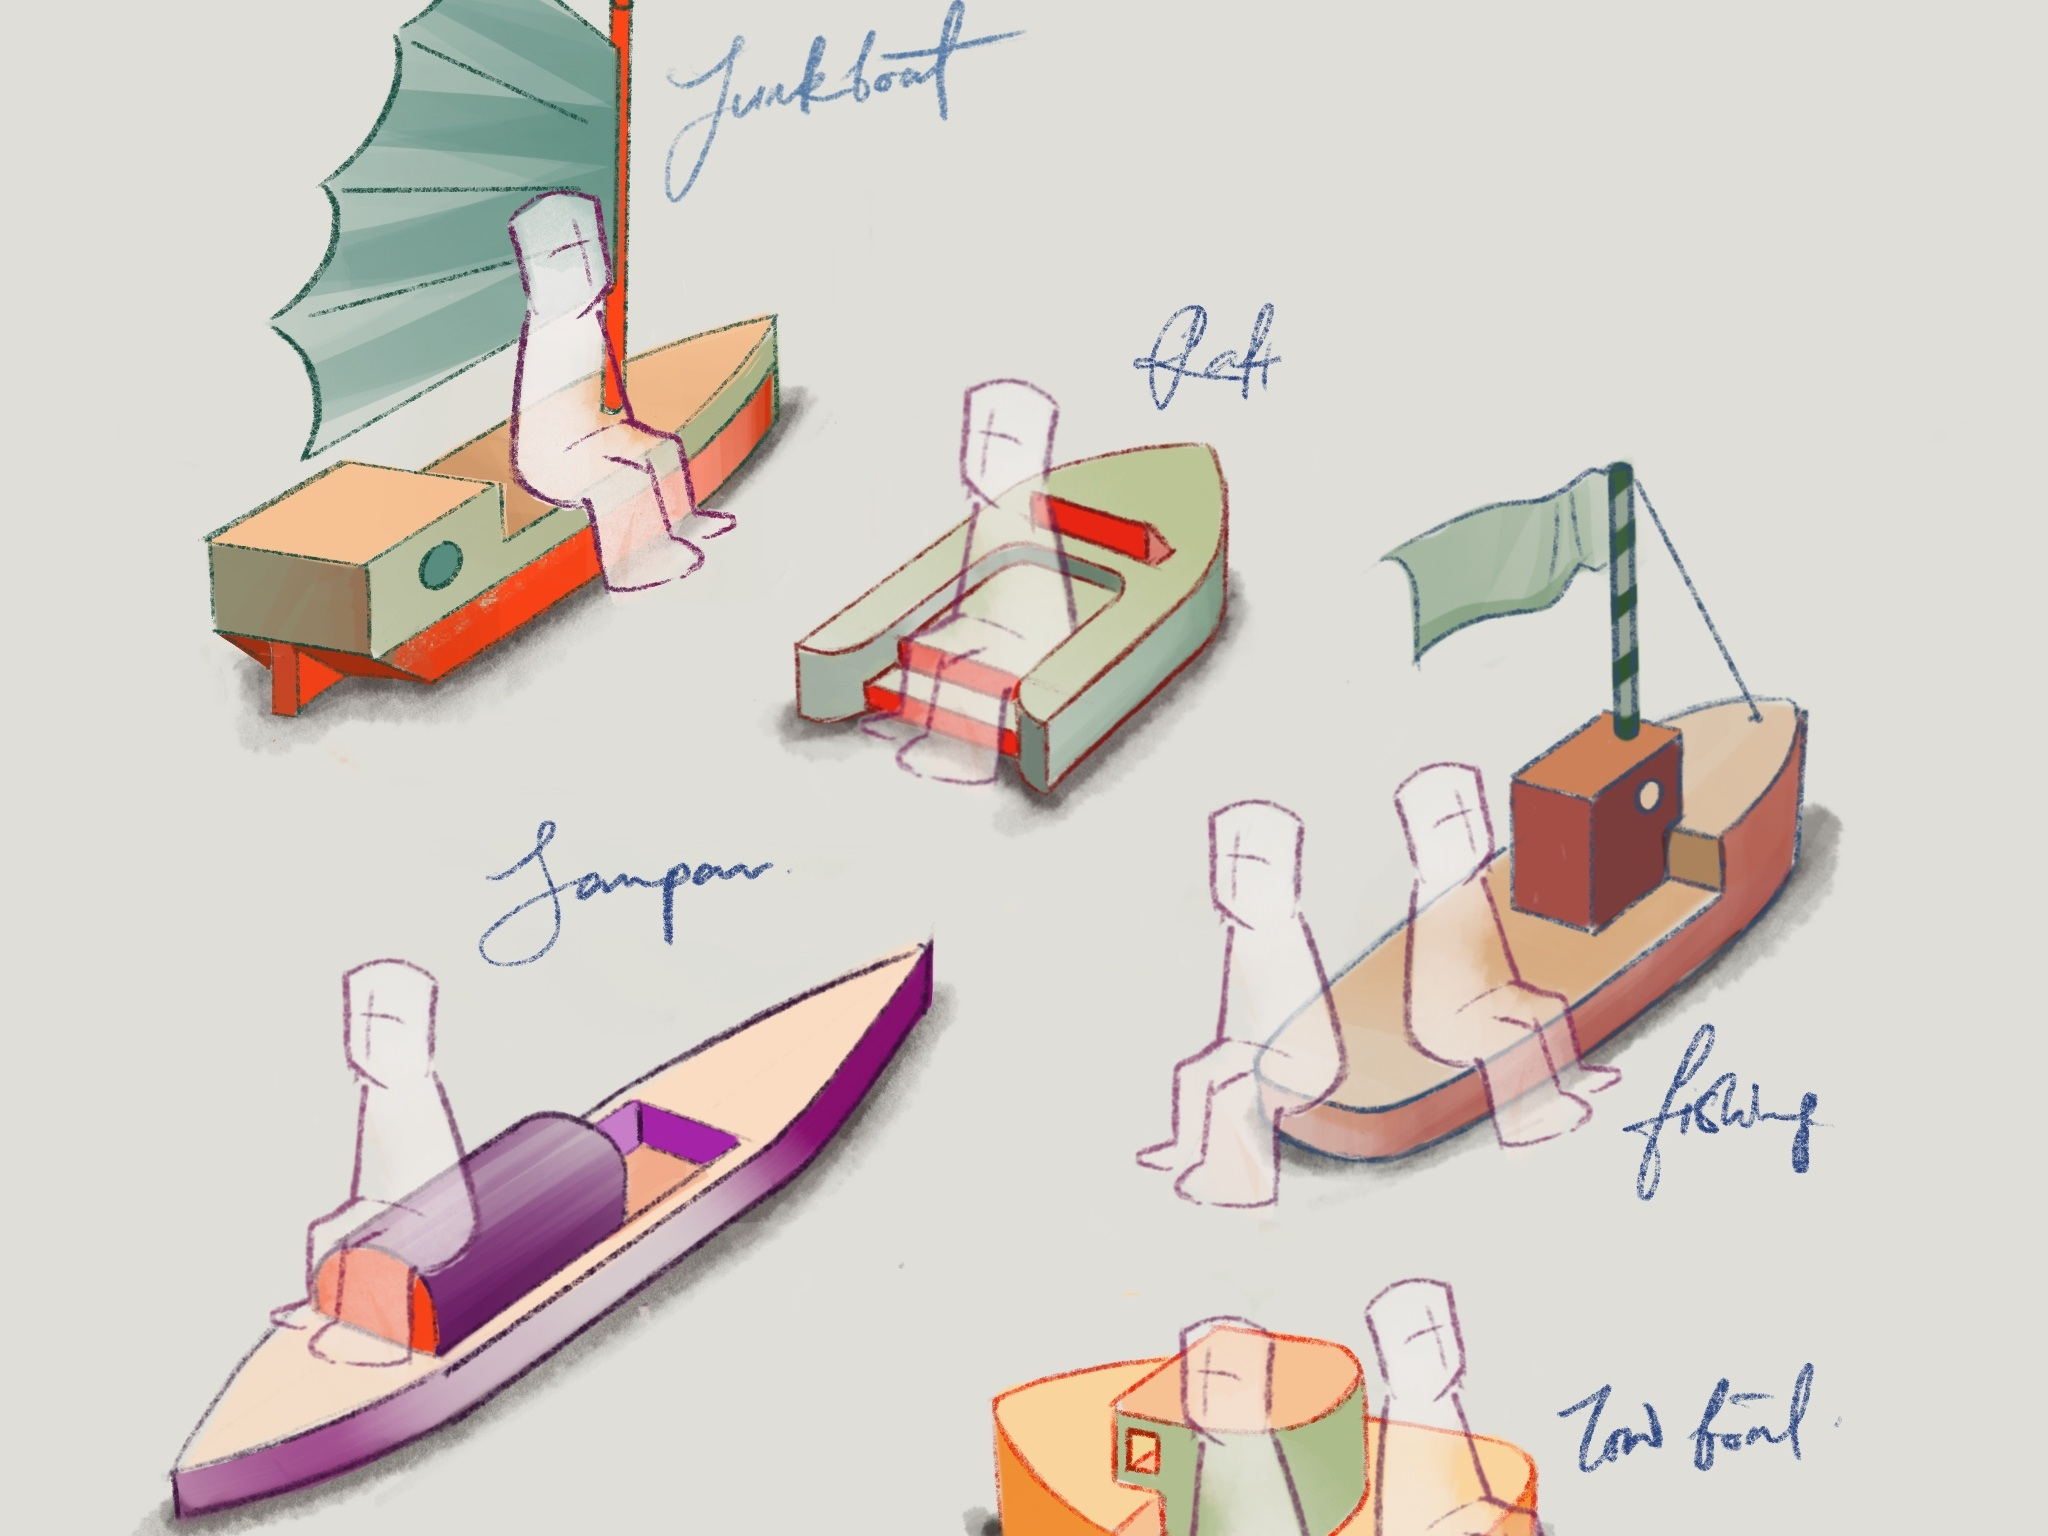 BetaBeta's illustrations of the boat furniture